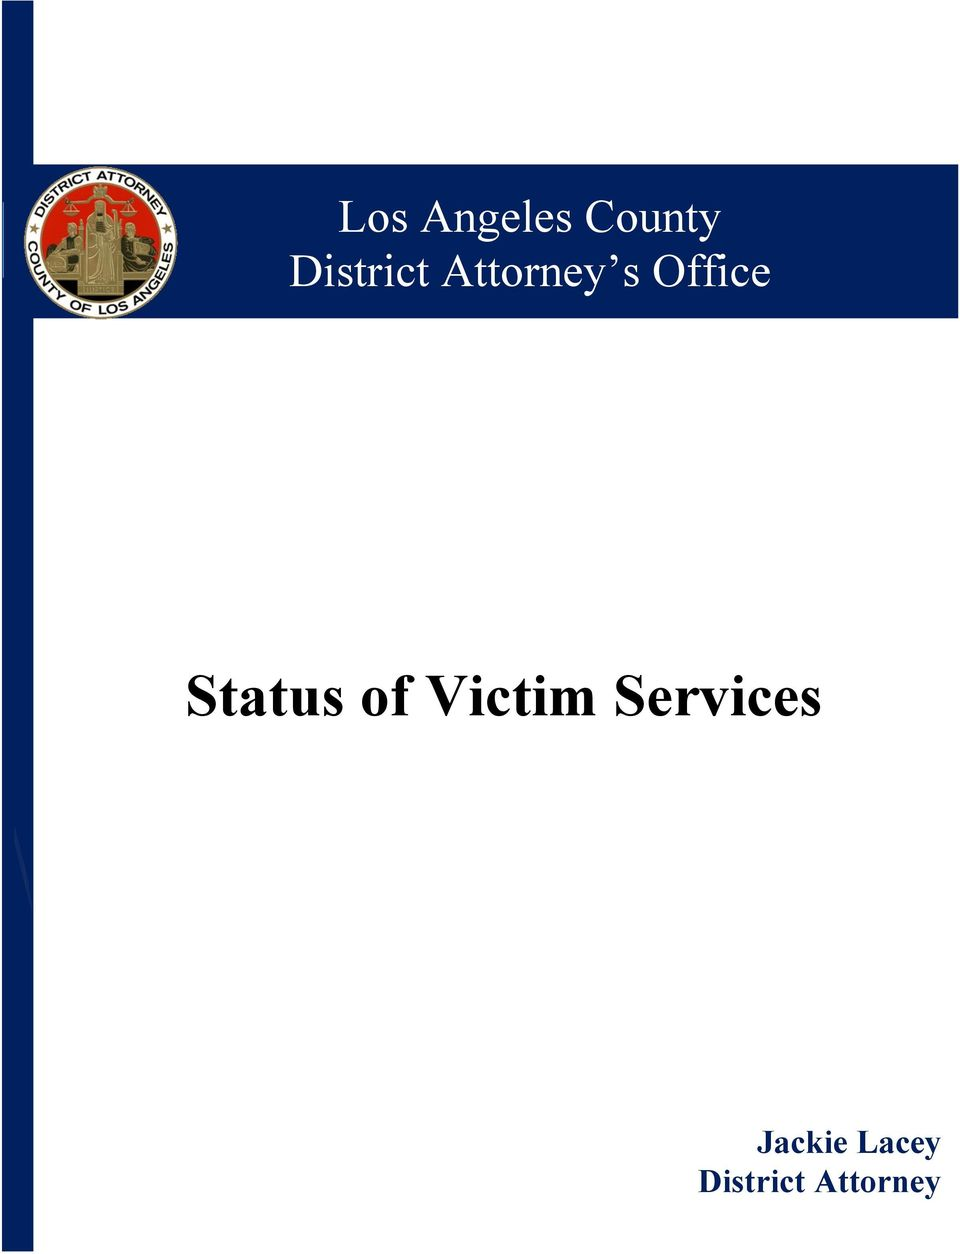 Status of Victim Services